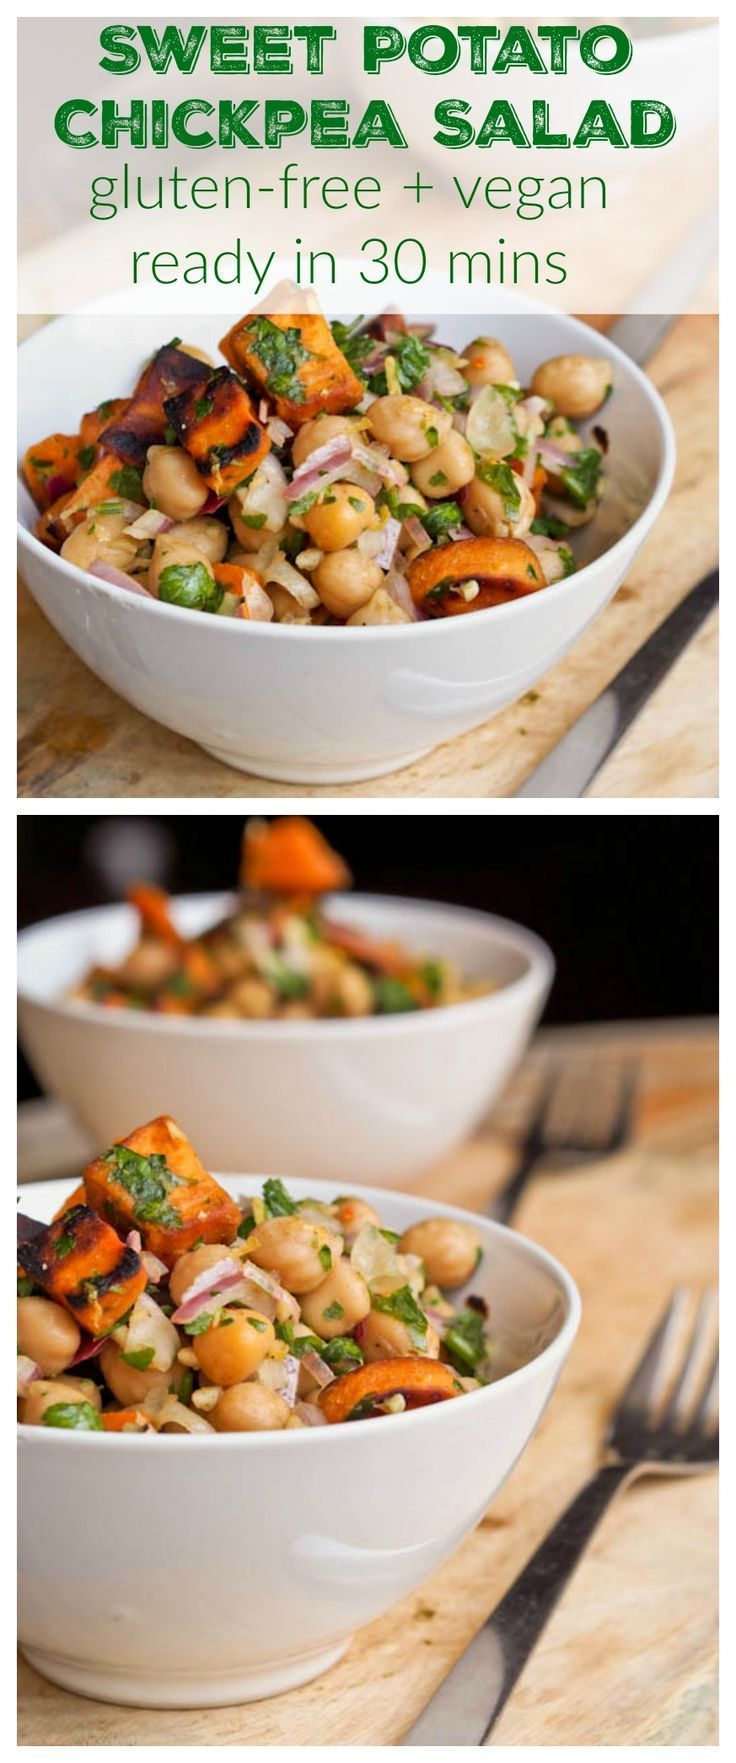 Sweet Potato Chickpea Salad (Gluten-Free, Vegan) #healthyweeknightmeals